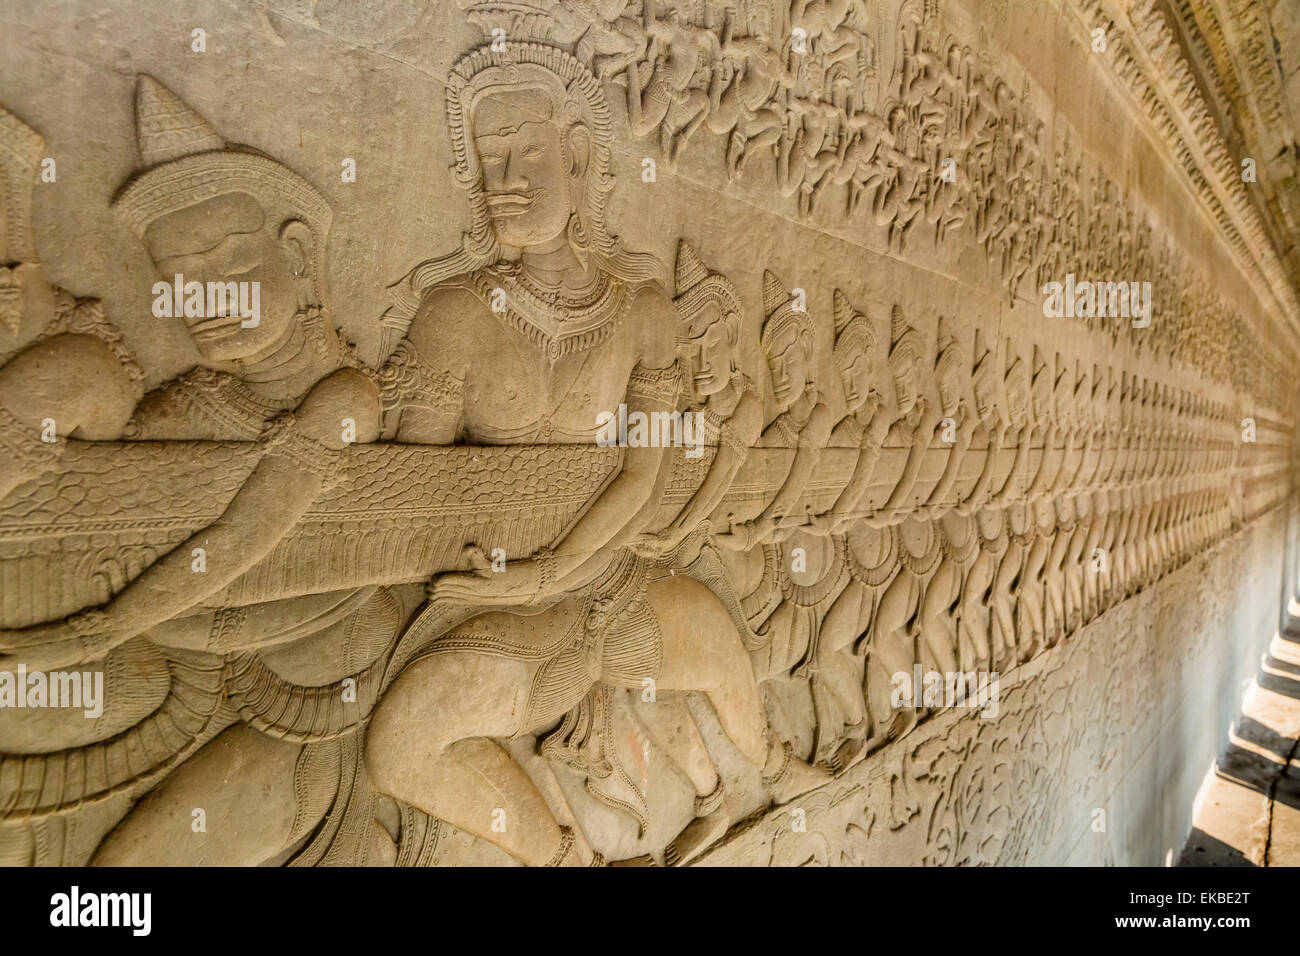 Bas relief carvings from the churning of sea milk